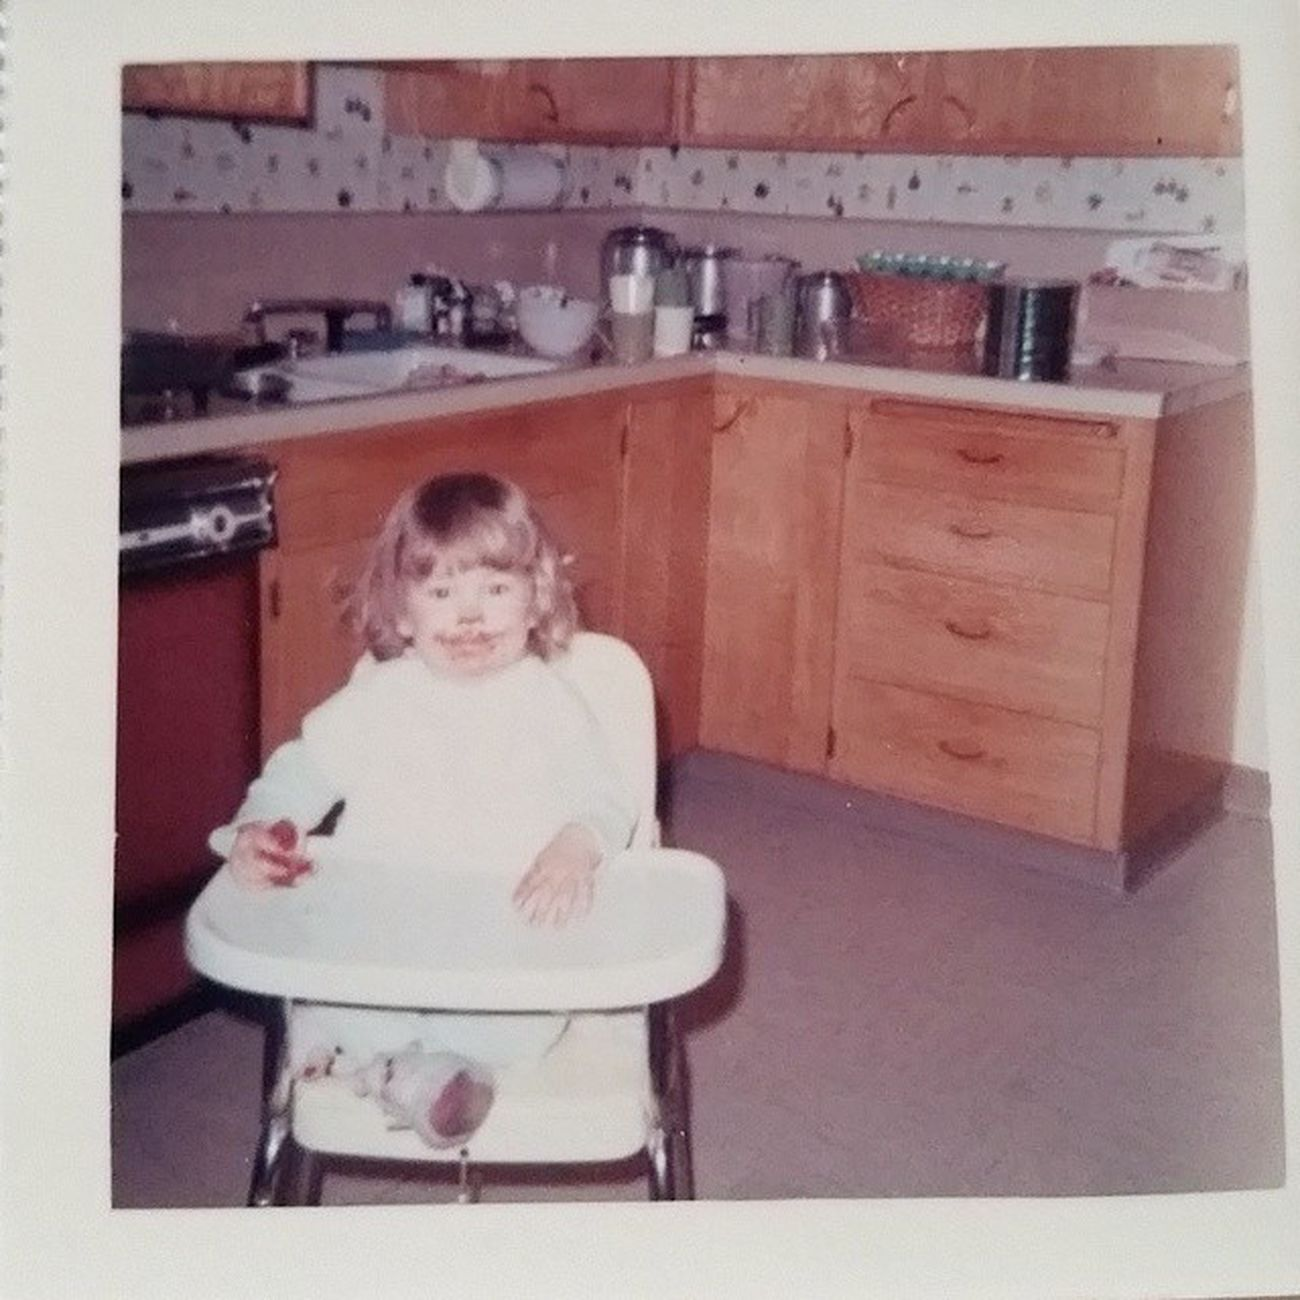 Little baby Kristen, enjoying a chocolate chip cookie, in my grandma's kitchen. ~1968 Chocolatewasted